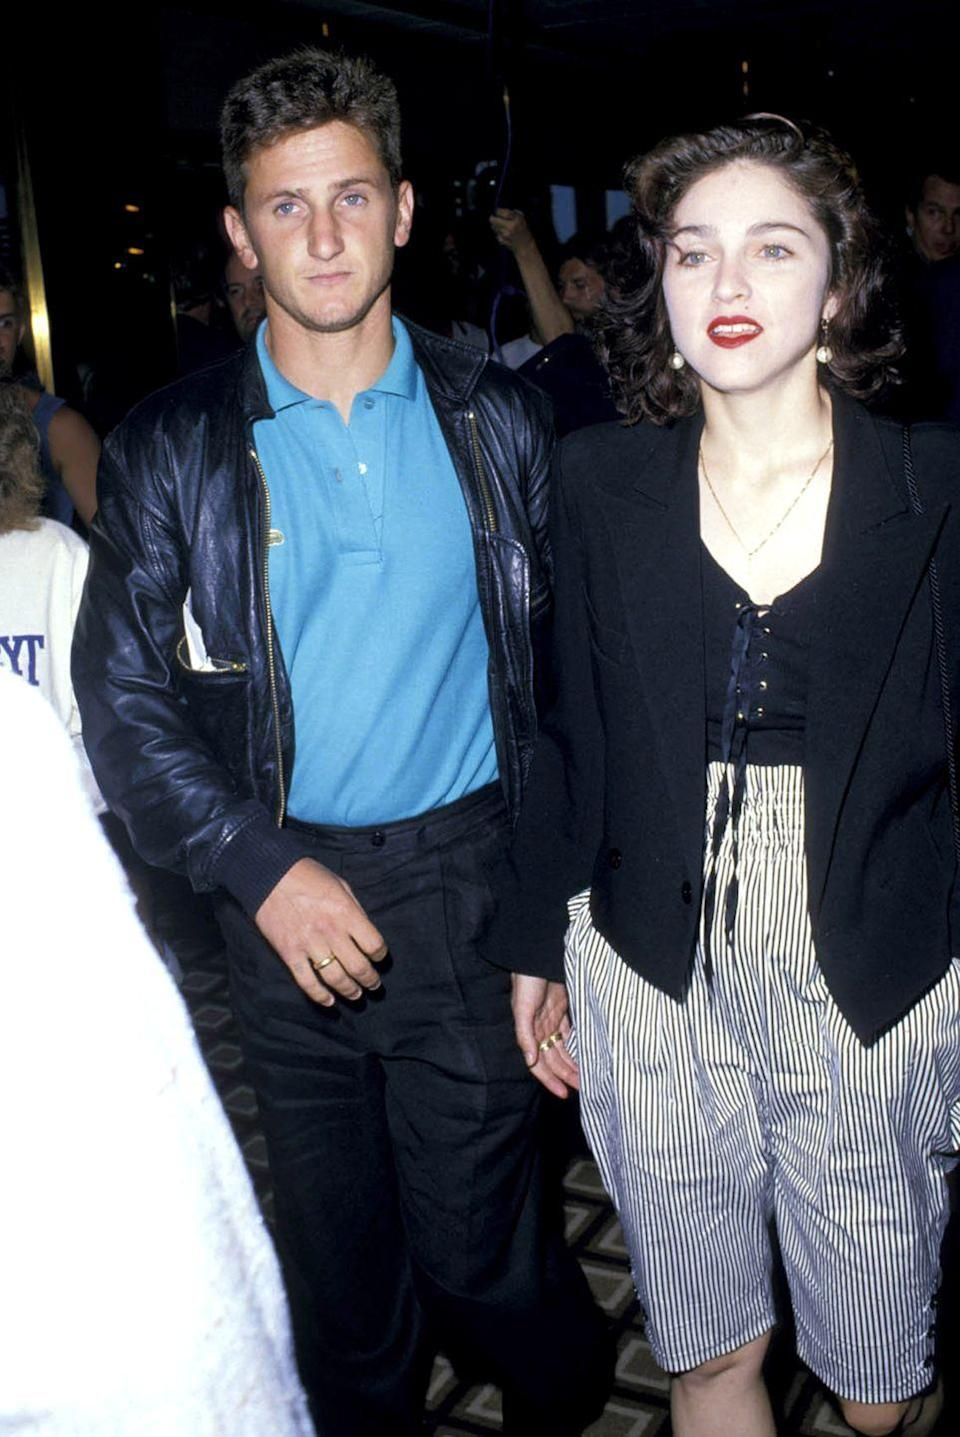 """<p>Before Sean Penn dated Charlize Theron or Madonna's marriage to Guy Ritchie, the Hollywood bad boy and """"Like a Virgin"""" singer were the """"it"""" couple of the '80s. They tied the knot in an elaborate Malibu beach ceremony in 1985 and were married for four years before calling it quits. </p>"""